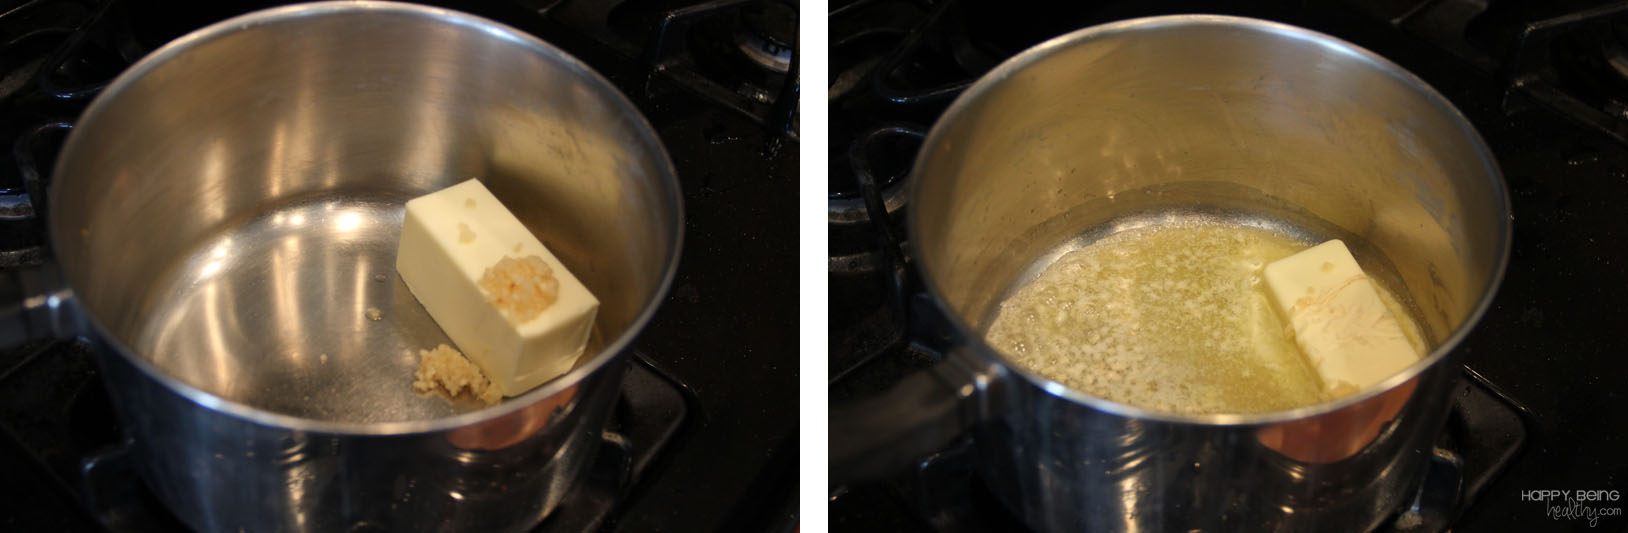 Melting butter for alfredo sauce